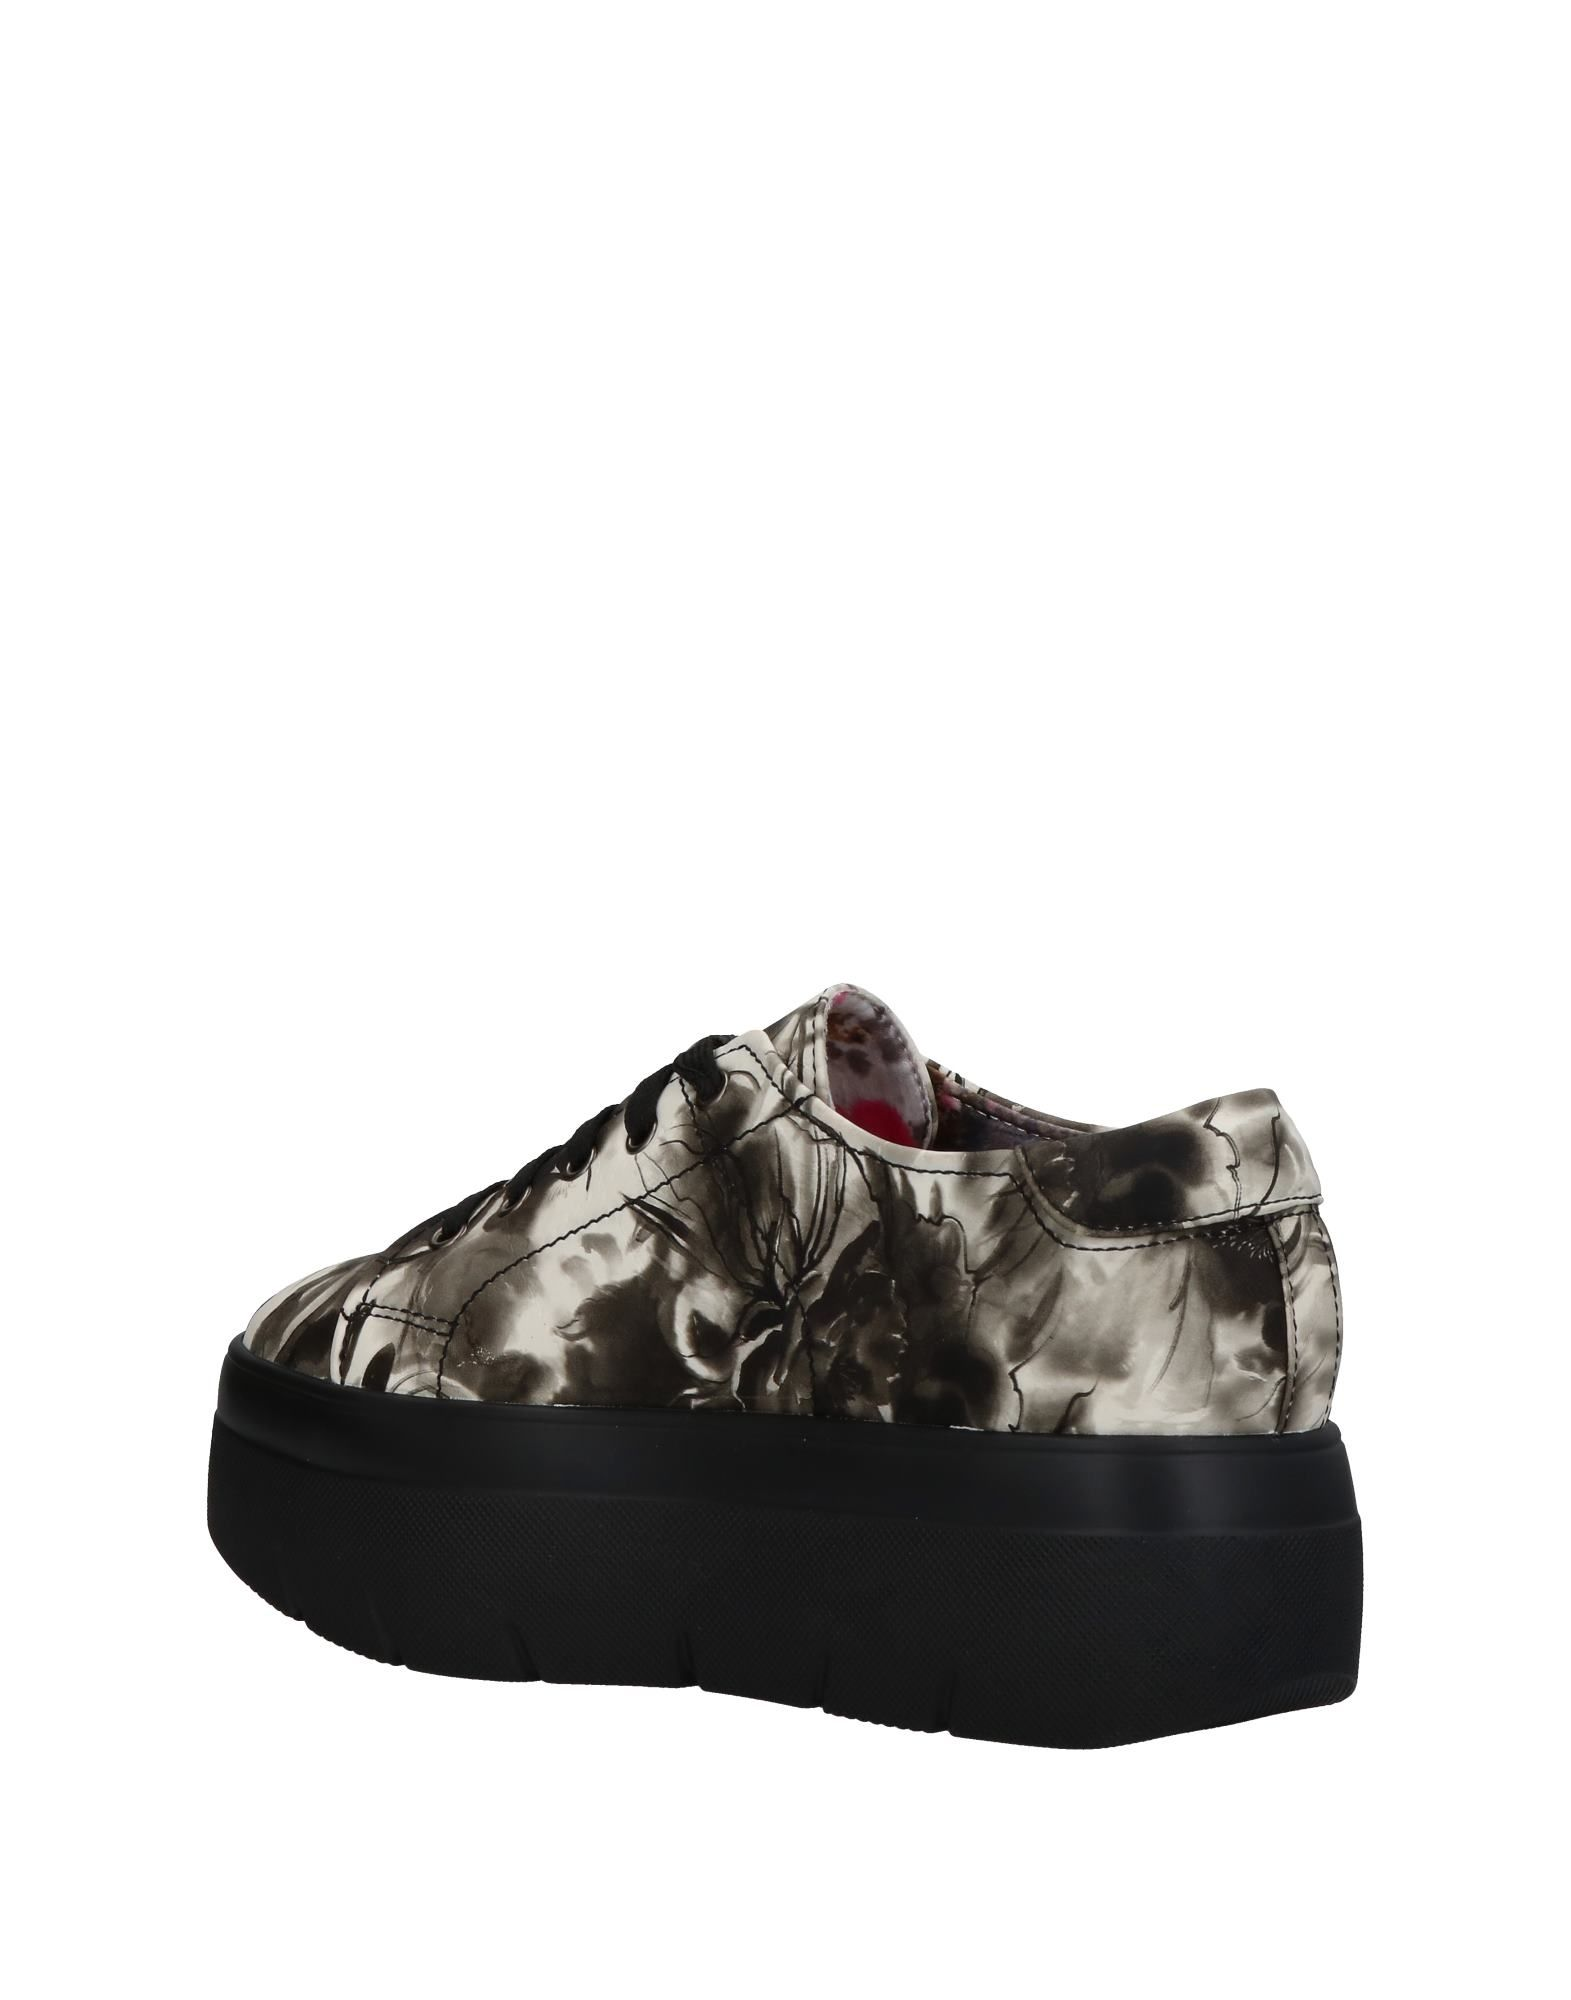 Sneakers Police Police Sneakers 883 Donna - 11377183JF e33ada